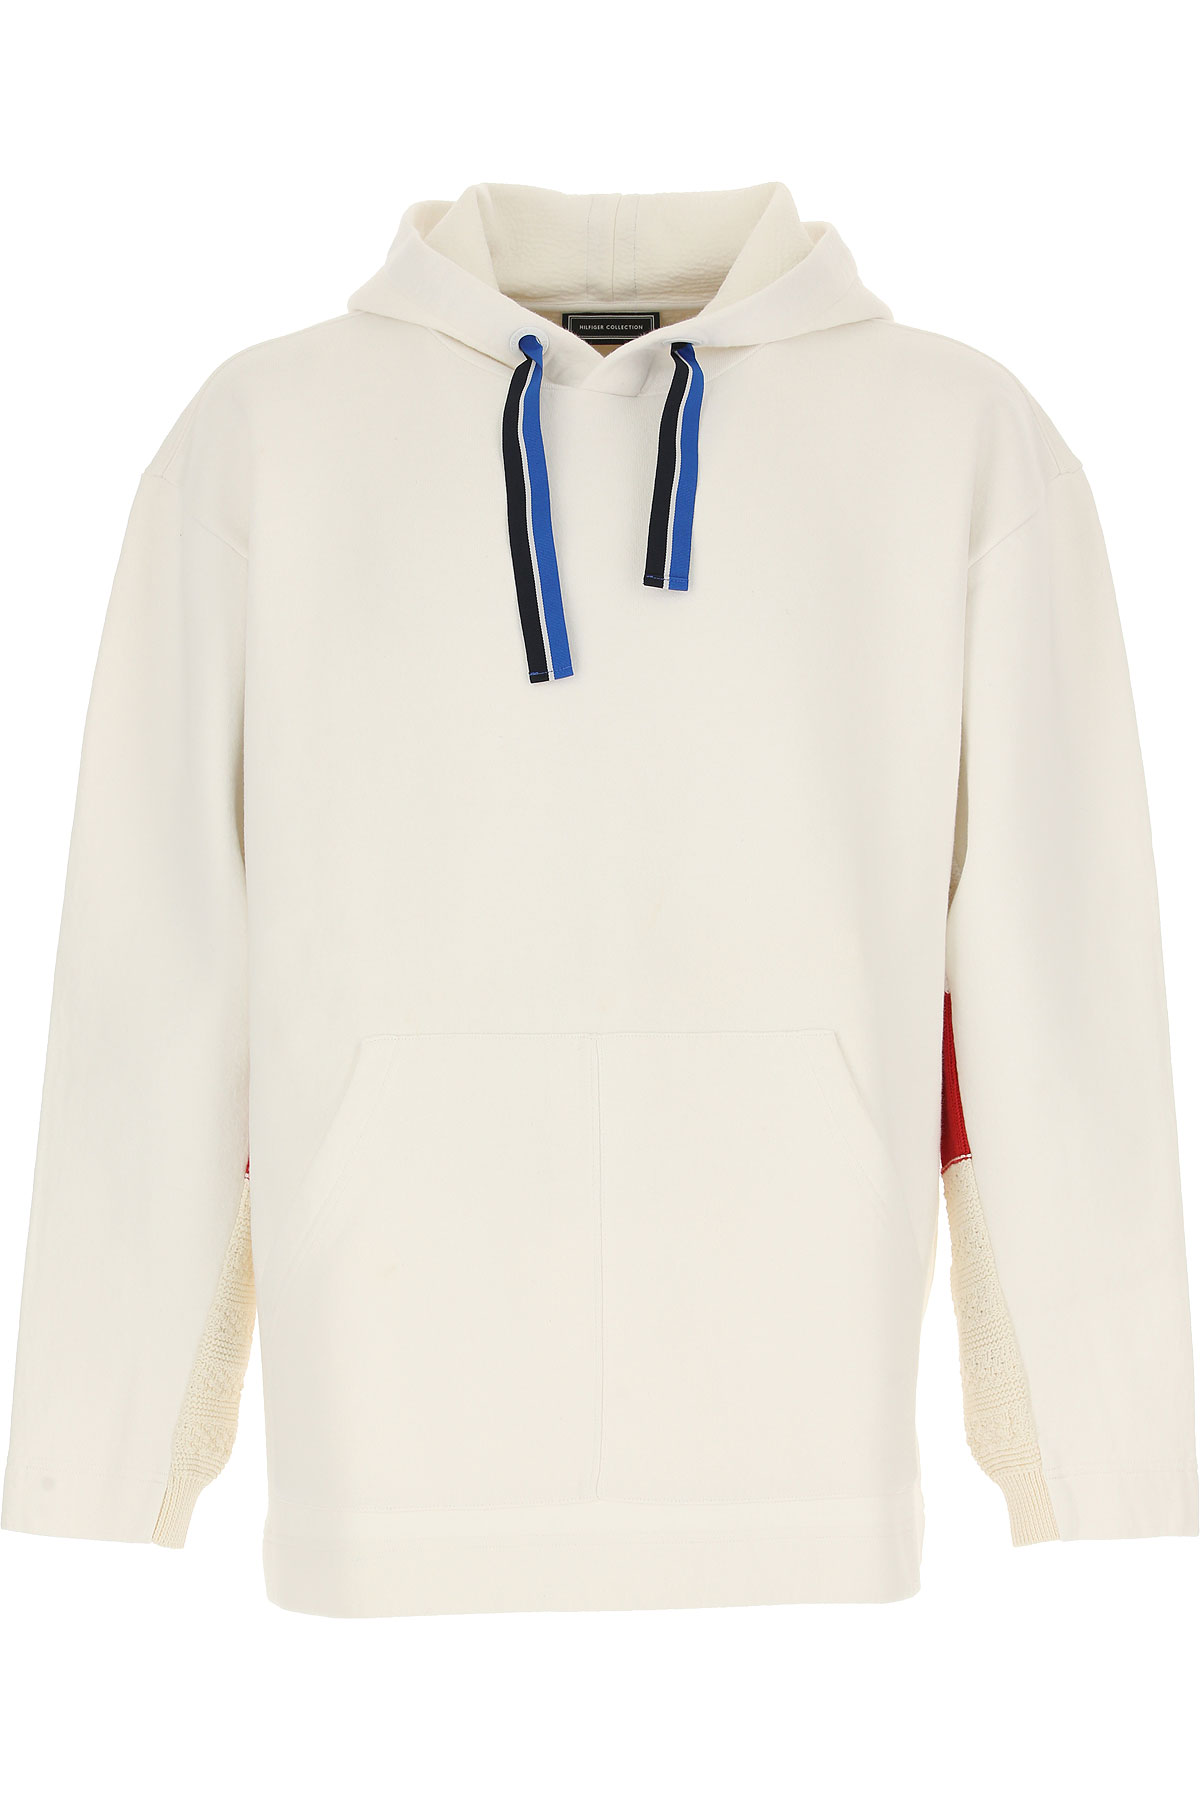 Tommy Hilfiger Jeans On Sale in Outlet, White, Cotton, 2019, L M